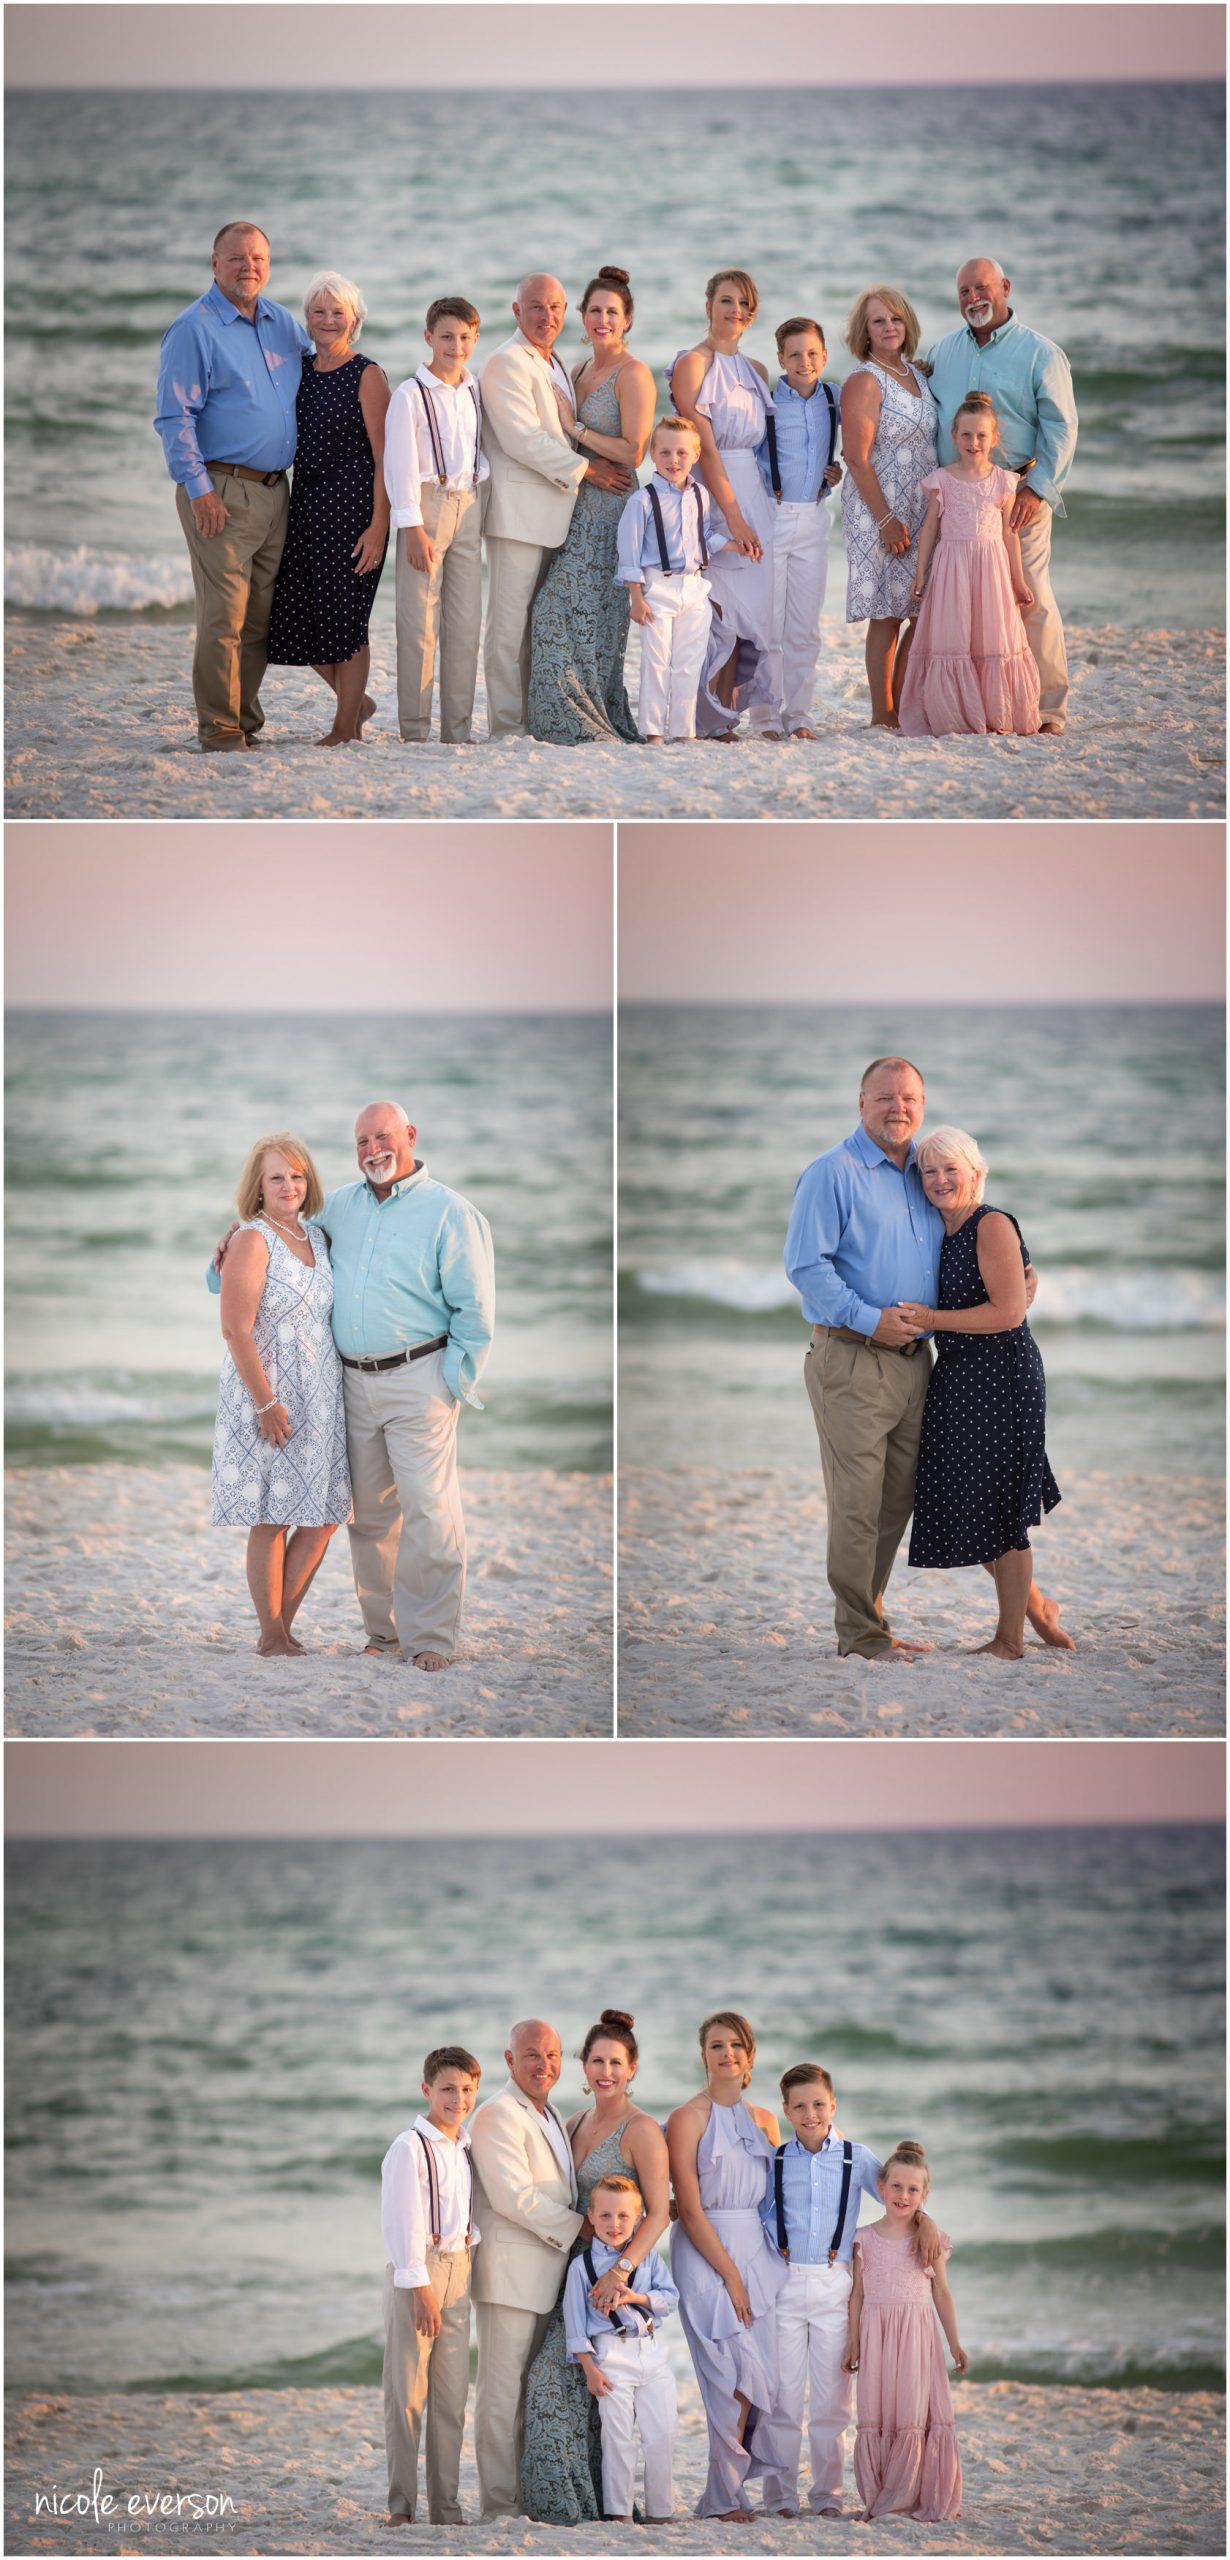 Rosemary Beach Pictures. Family in front of the ocean on Rosemary Beach. Nicole Everson Photography.